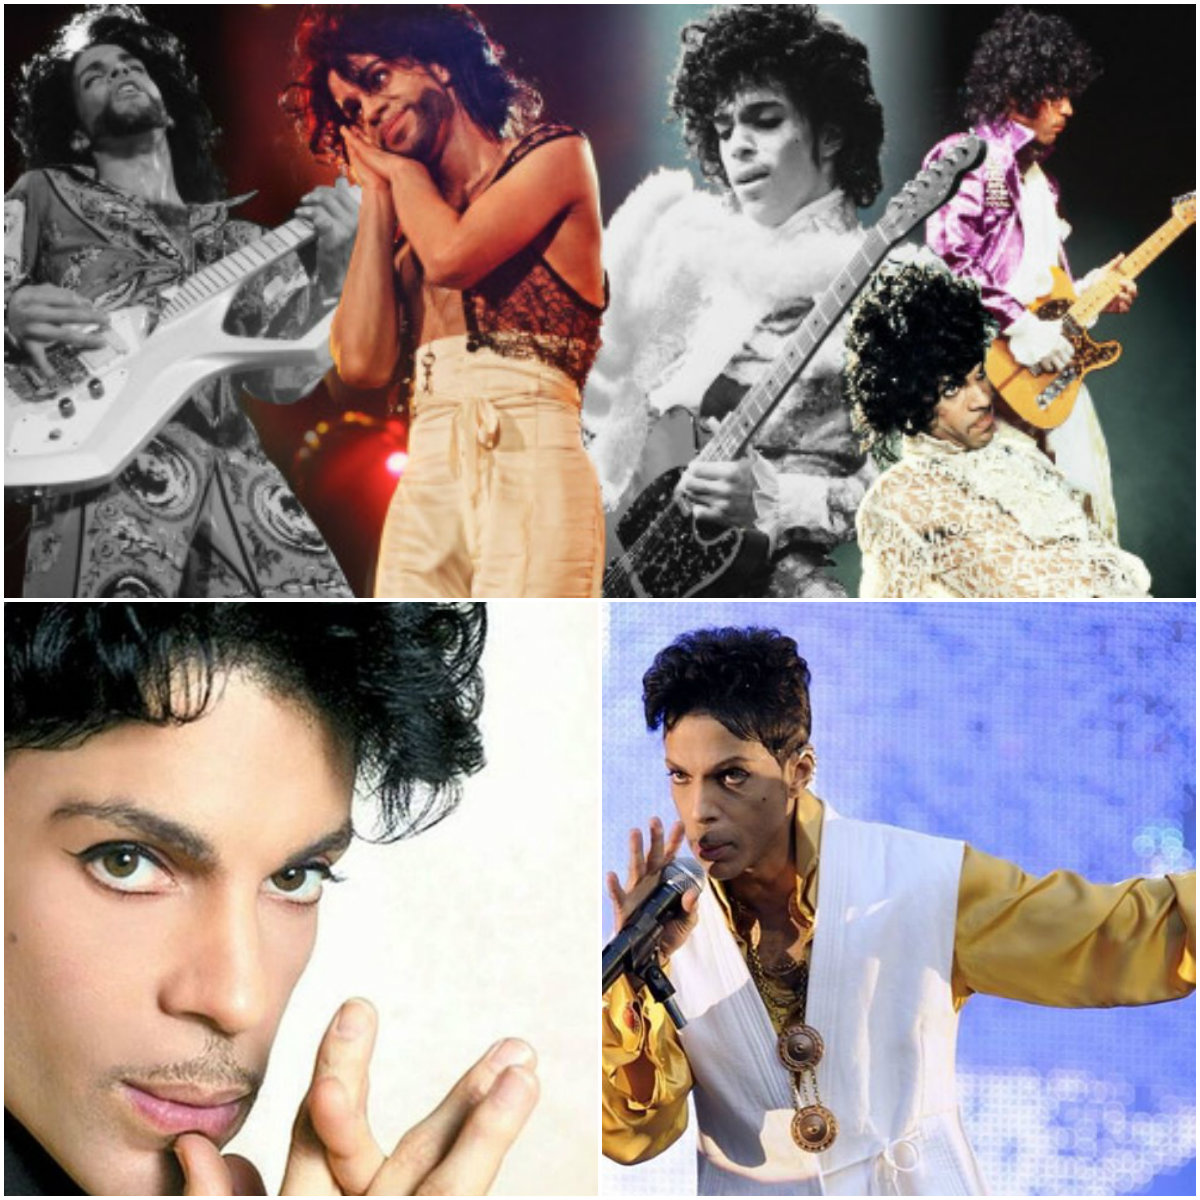 Prince Rogers Nelson 💔 June 7, 1958 ~ April 21, 2016